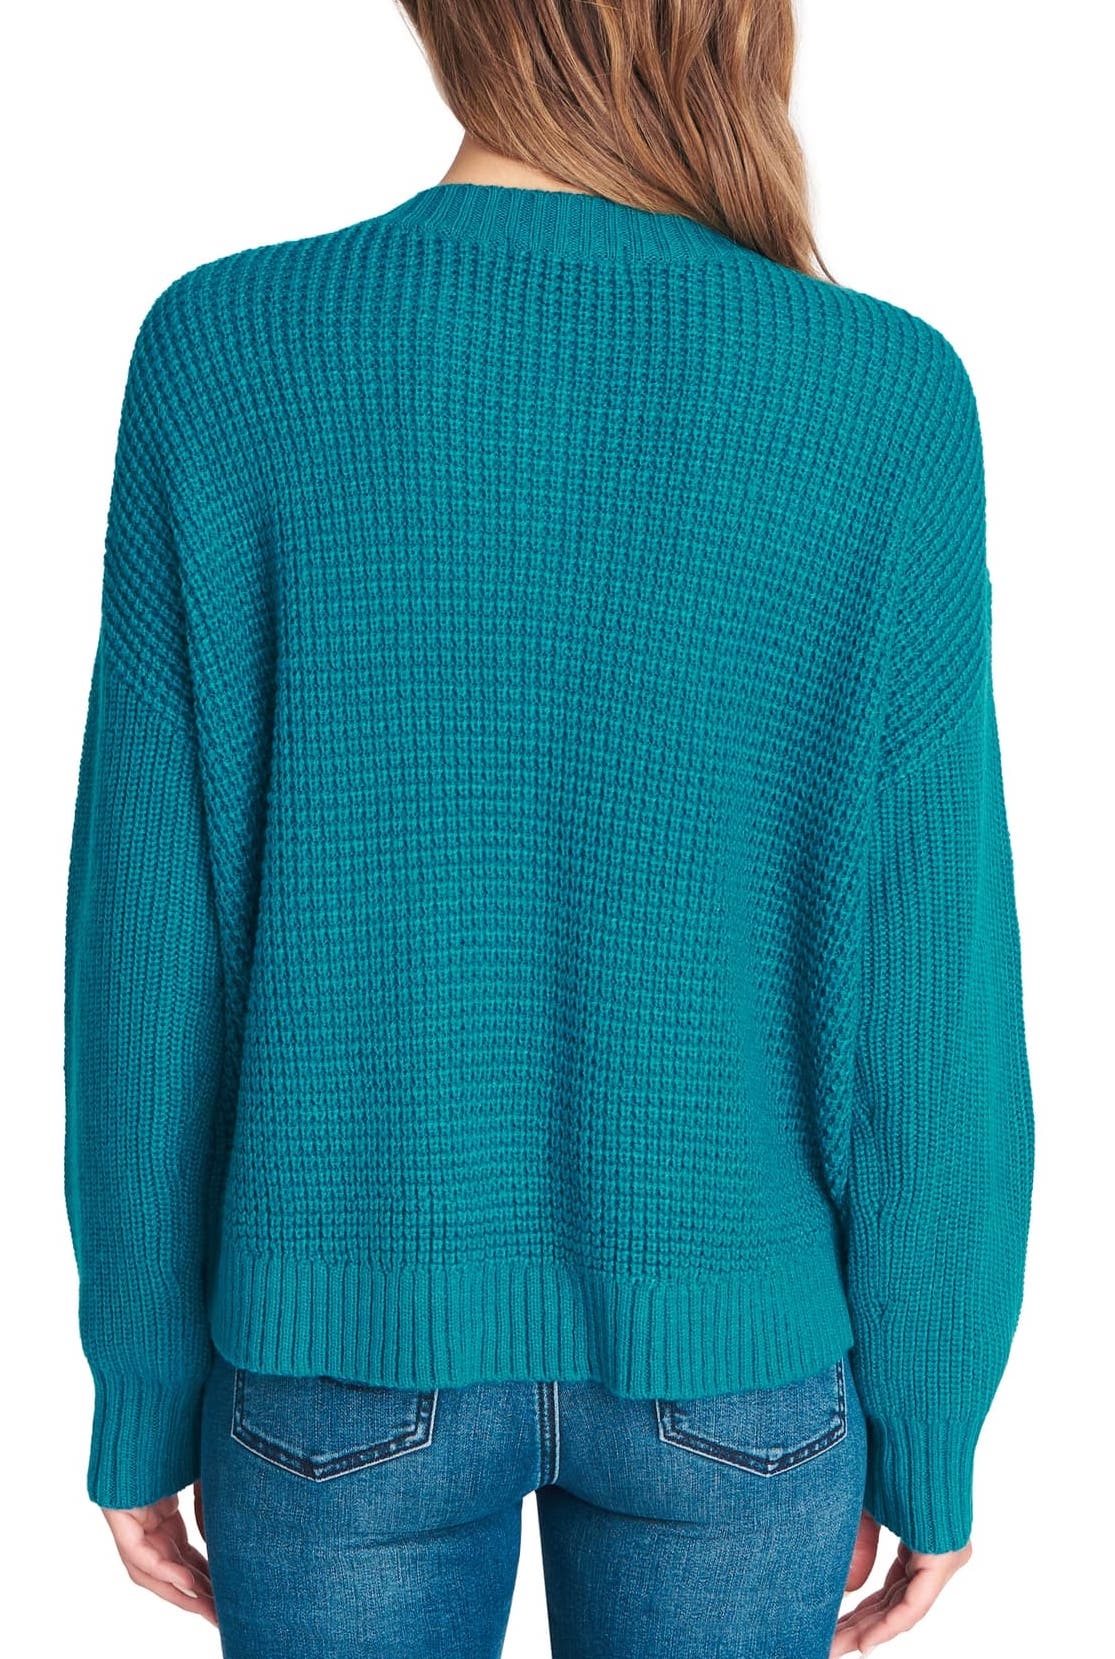 Apatite Sorry Not Sorry Sweater